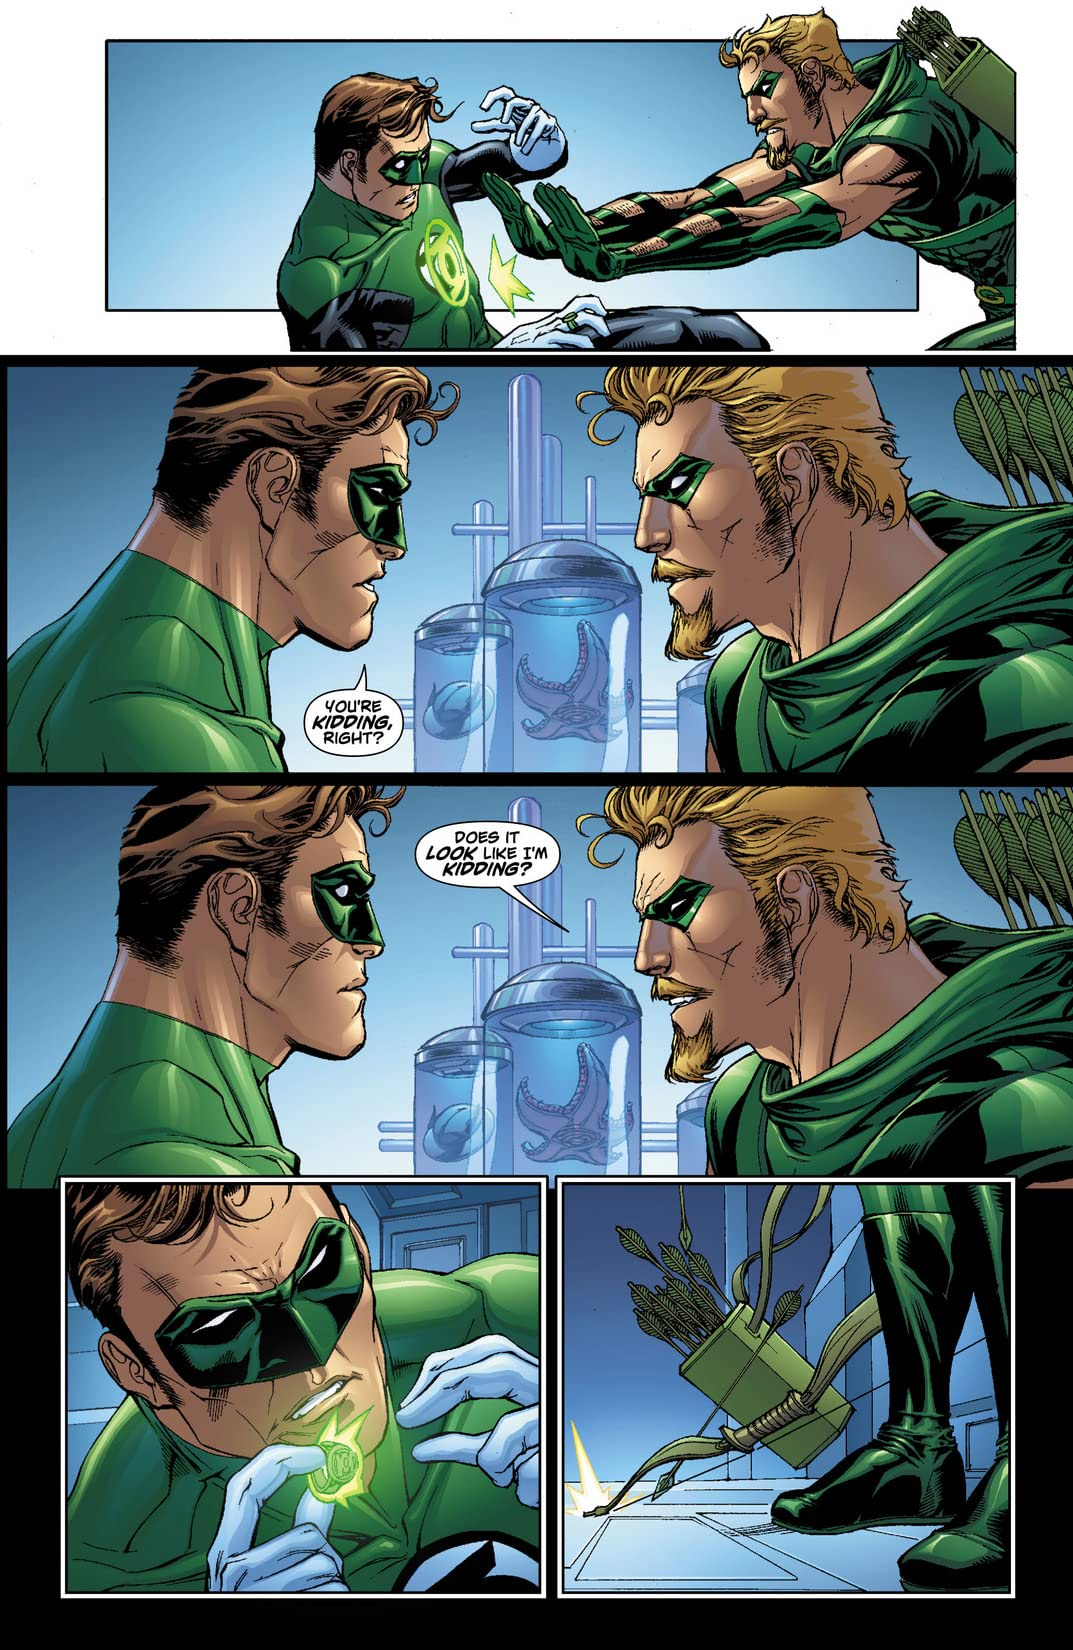 DC Universe: Decisions #2 (of 4)